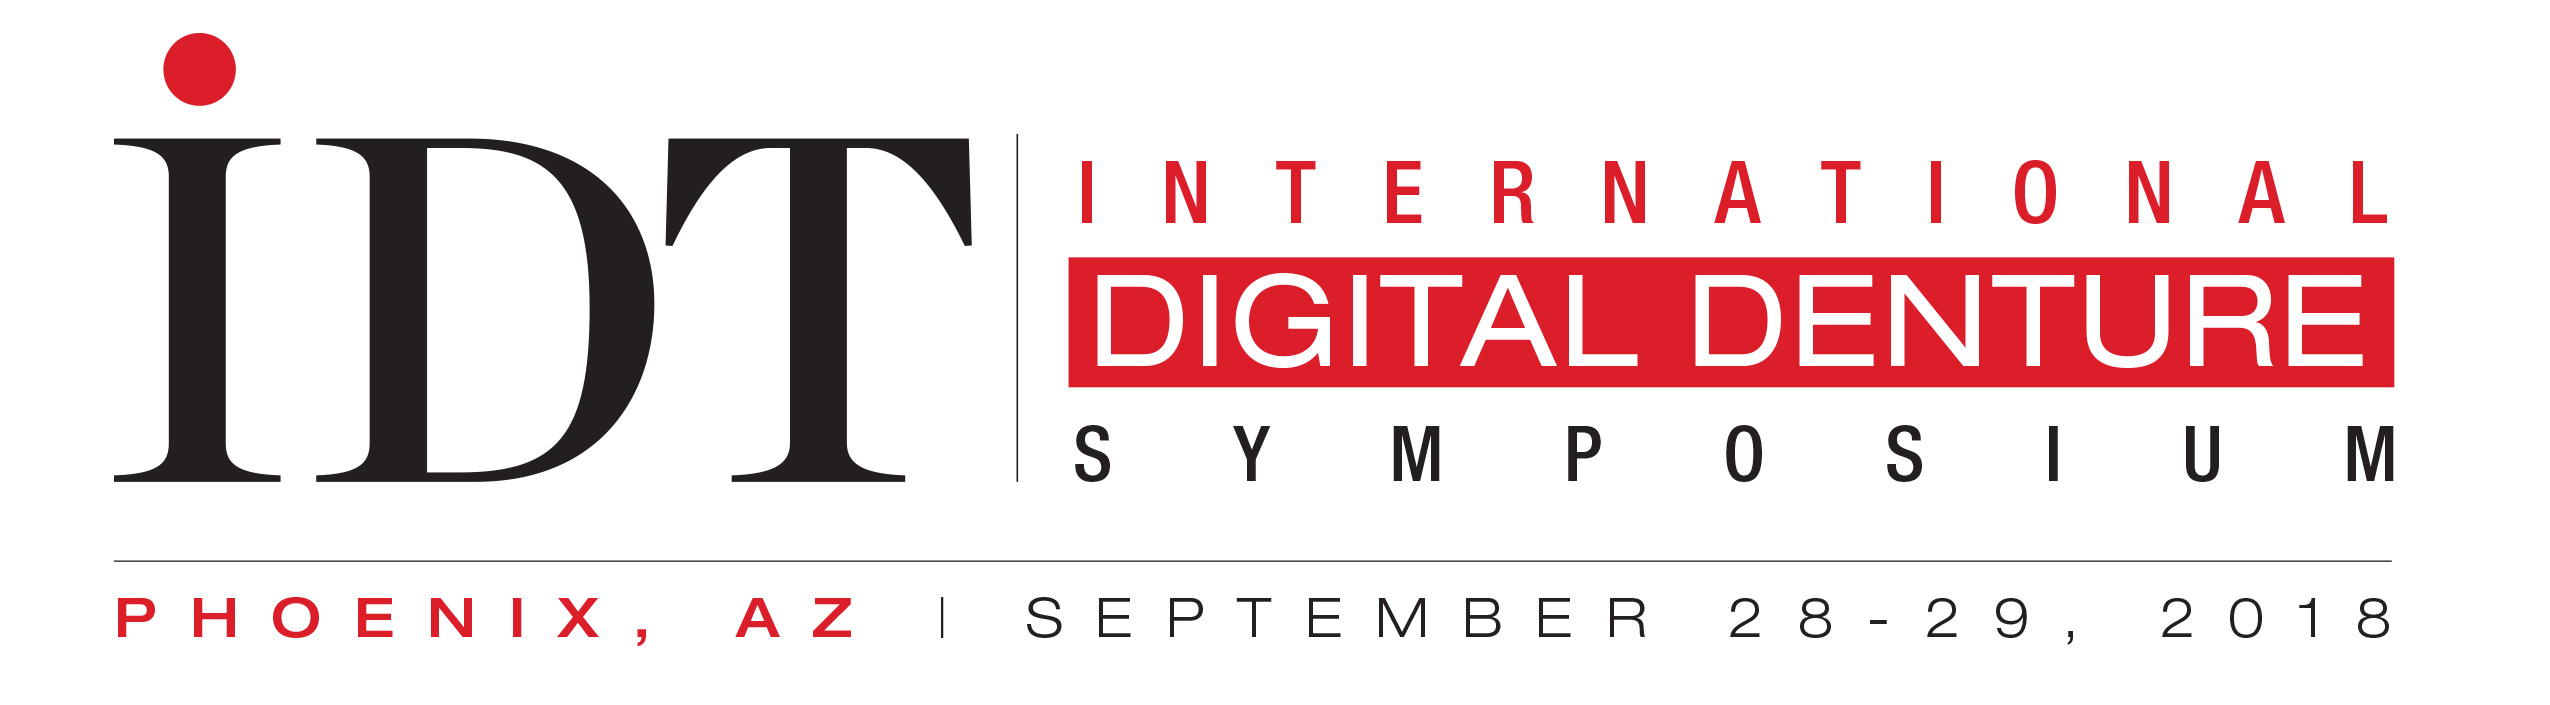 IDT International Digital Denture Symposium 2018